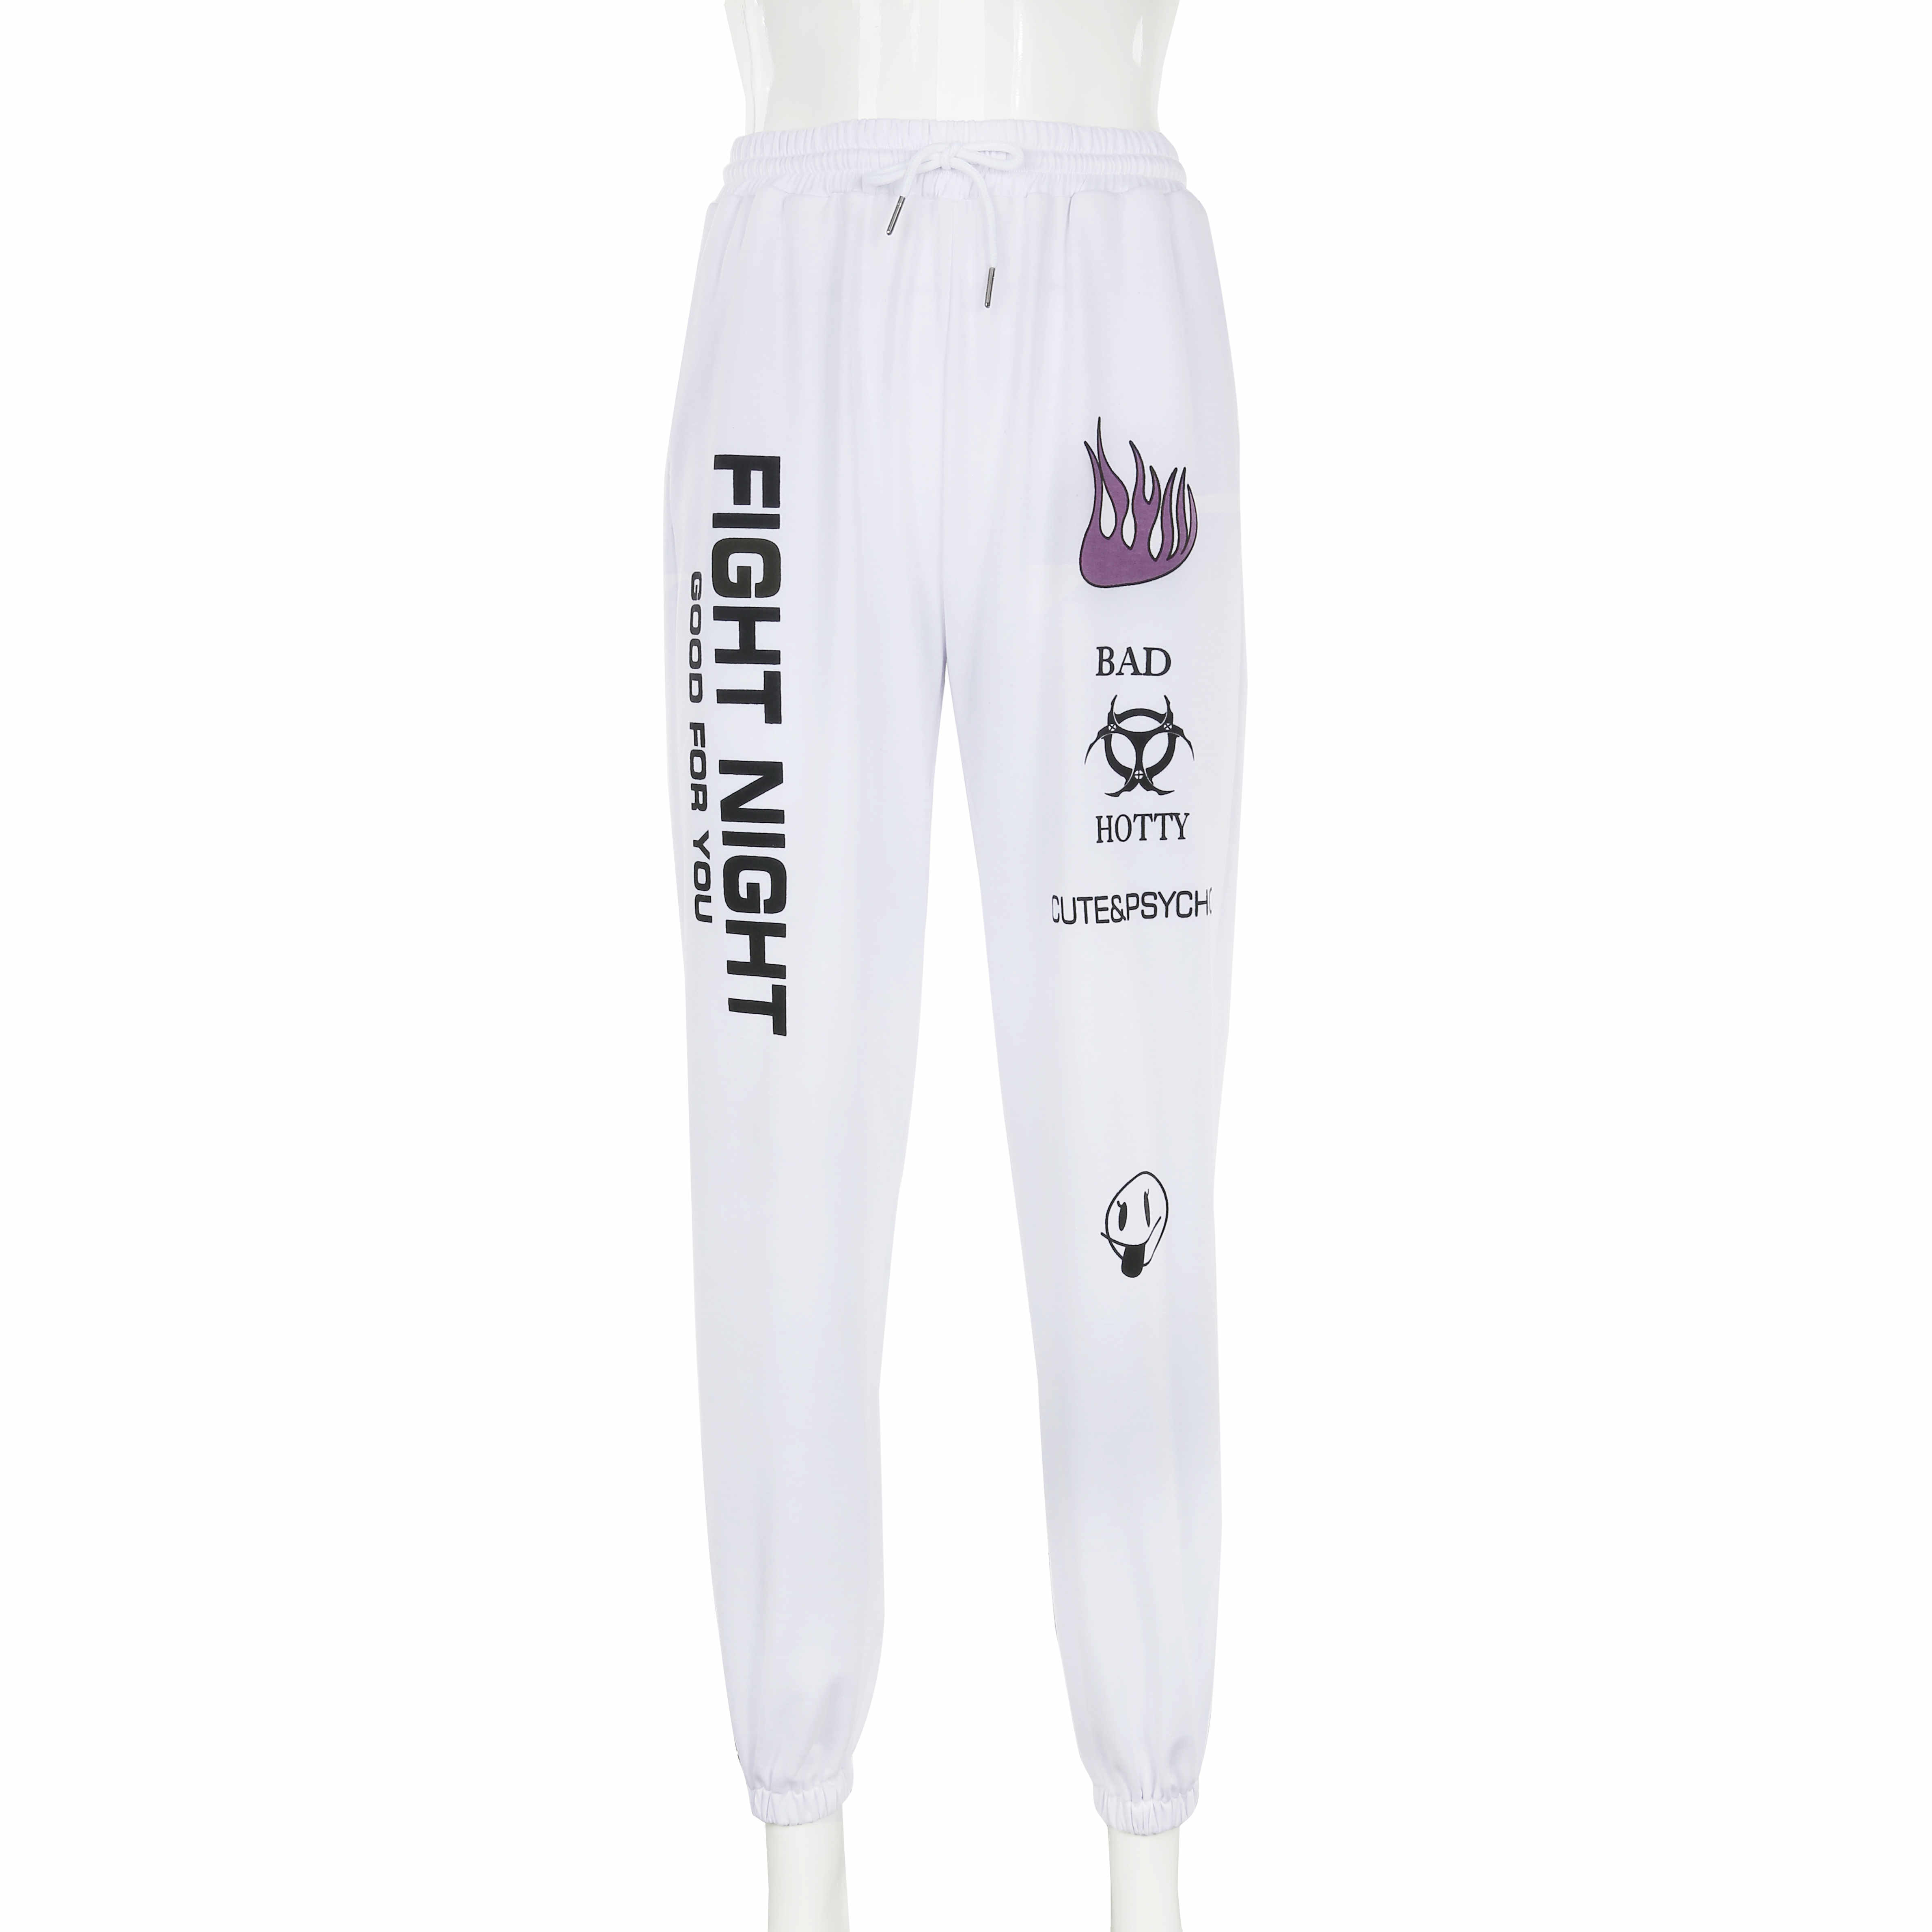 H23615937cdf9449a83bed8b86bc907c97 - Weekeep Knitted High Waist Printed Ankle Length Sweatpants Women White Streetwear Trousers Women Autumn Winter Fashion Pants